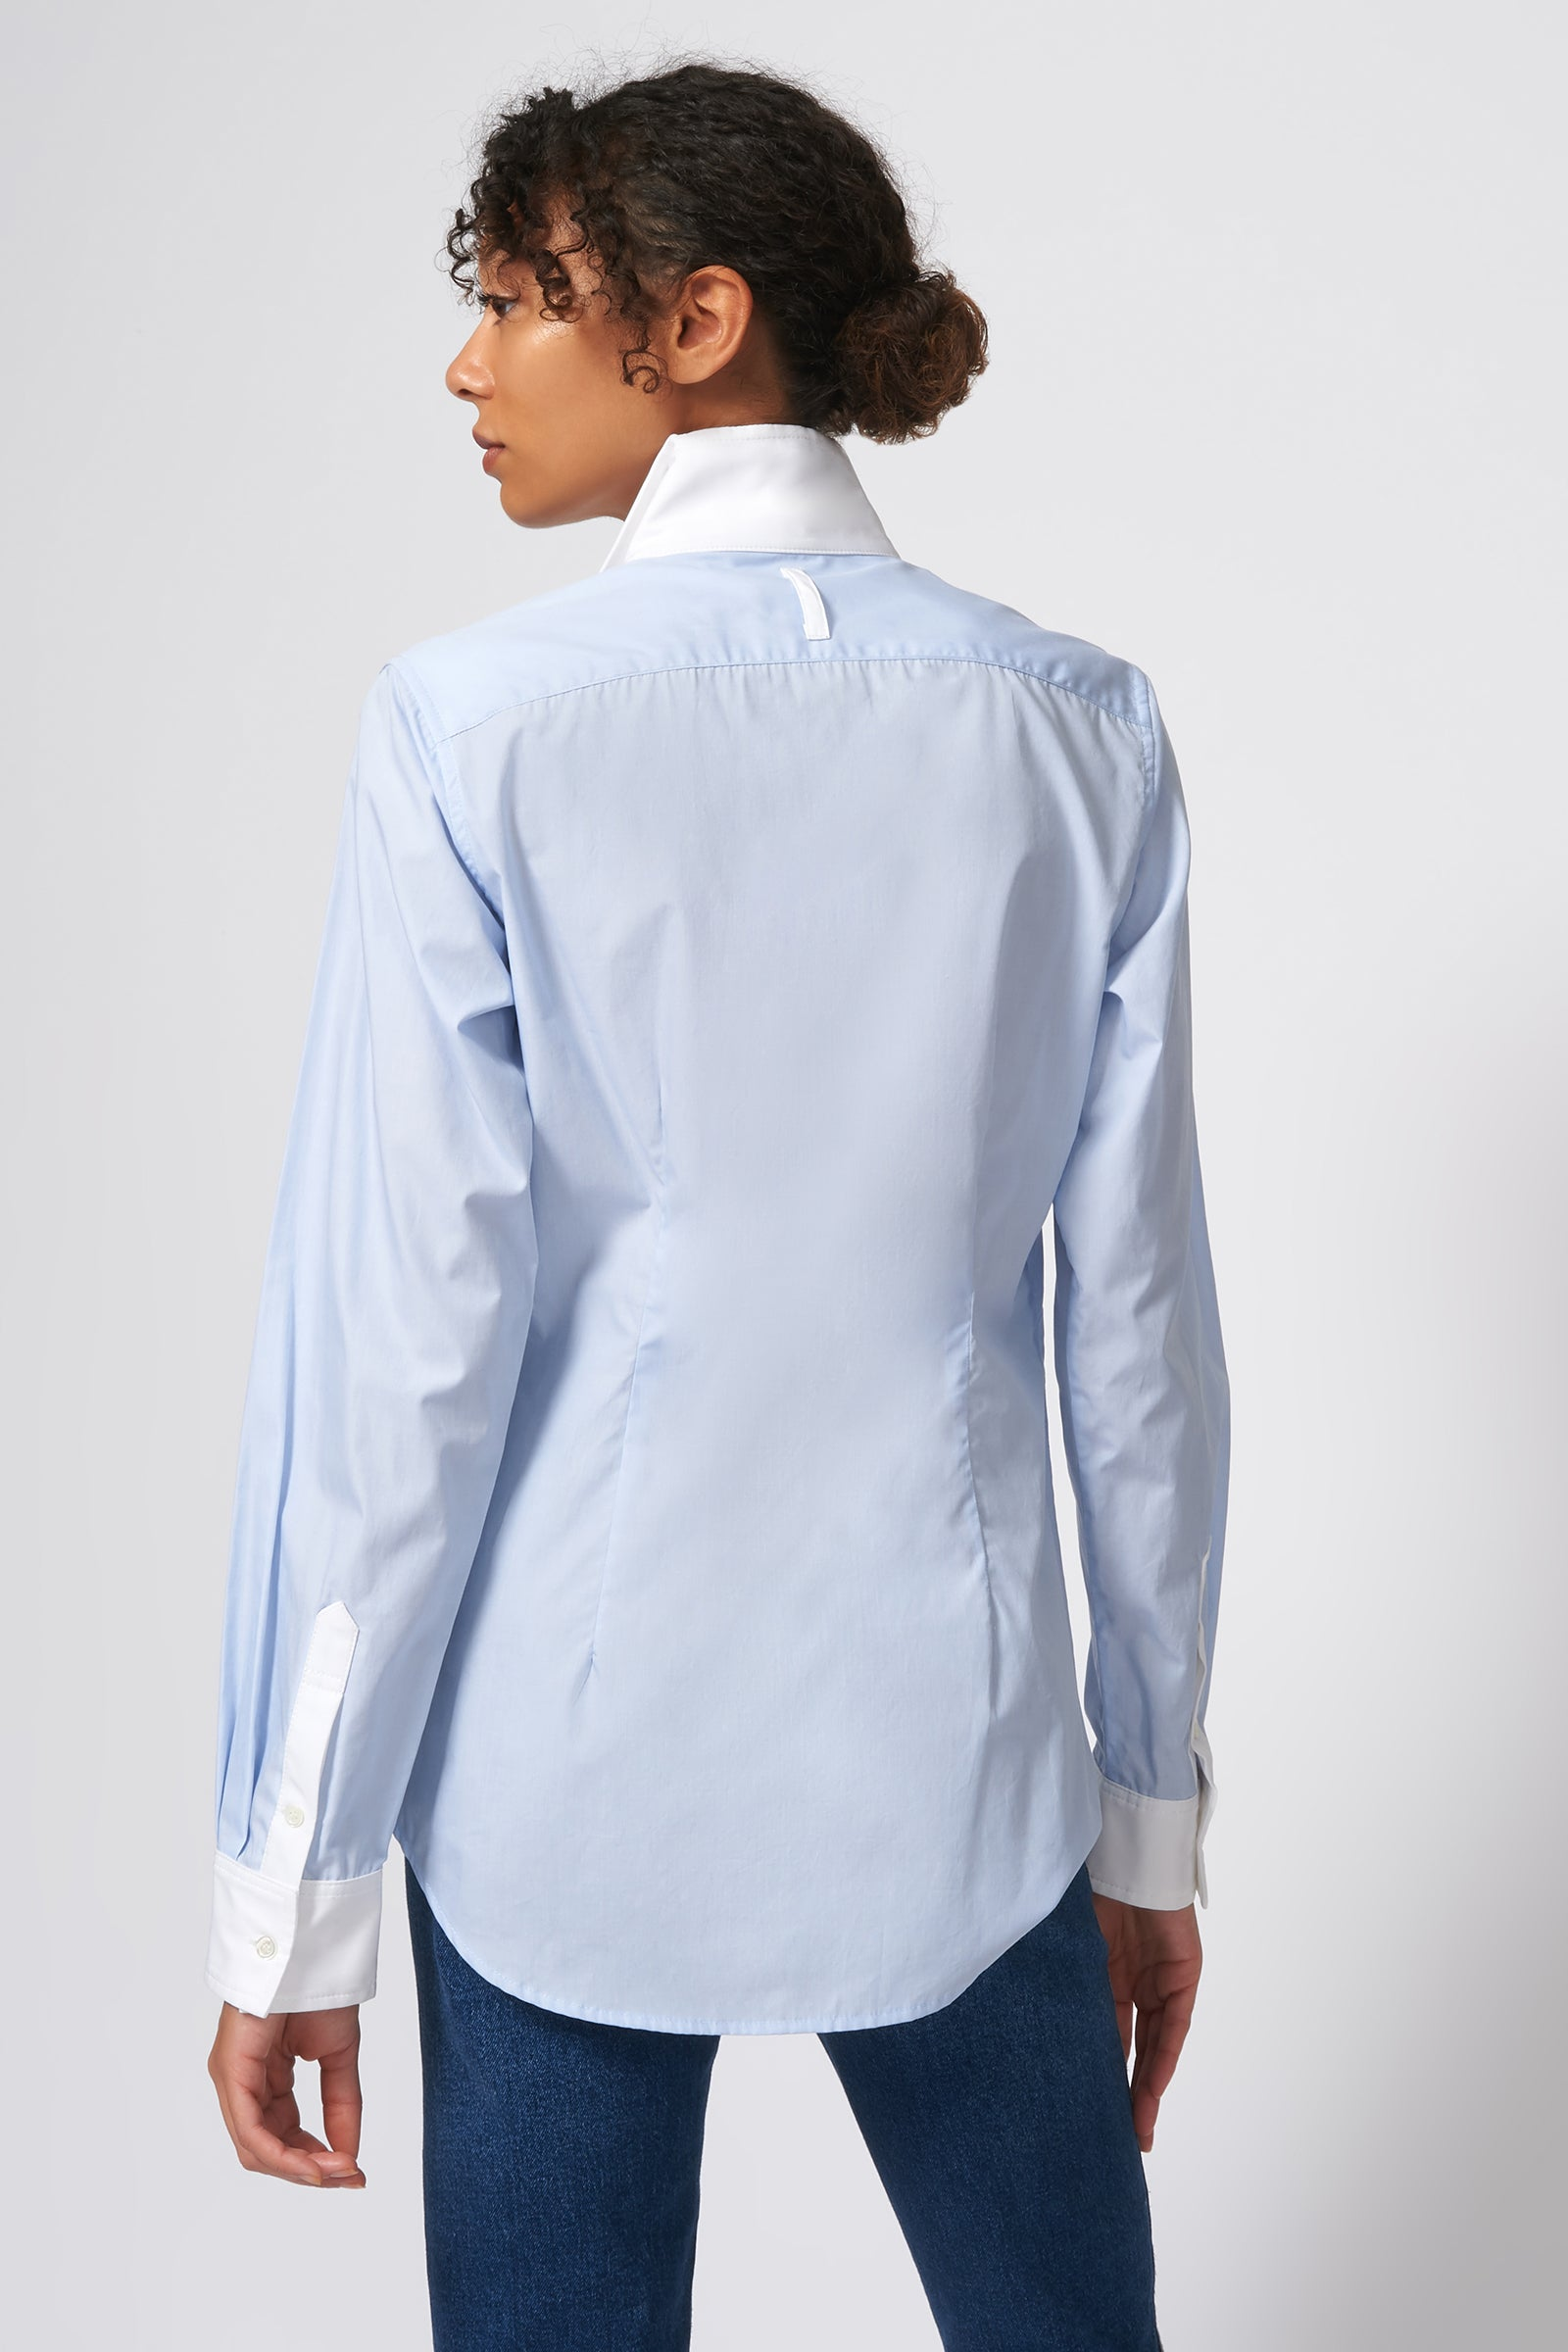 Kal Rieman Double Collar Shirt in Oxford Blue with White Poplin on Model Front View